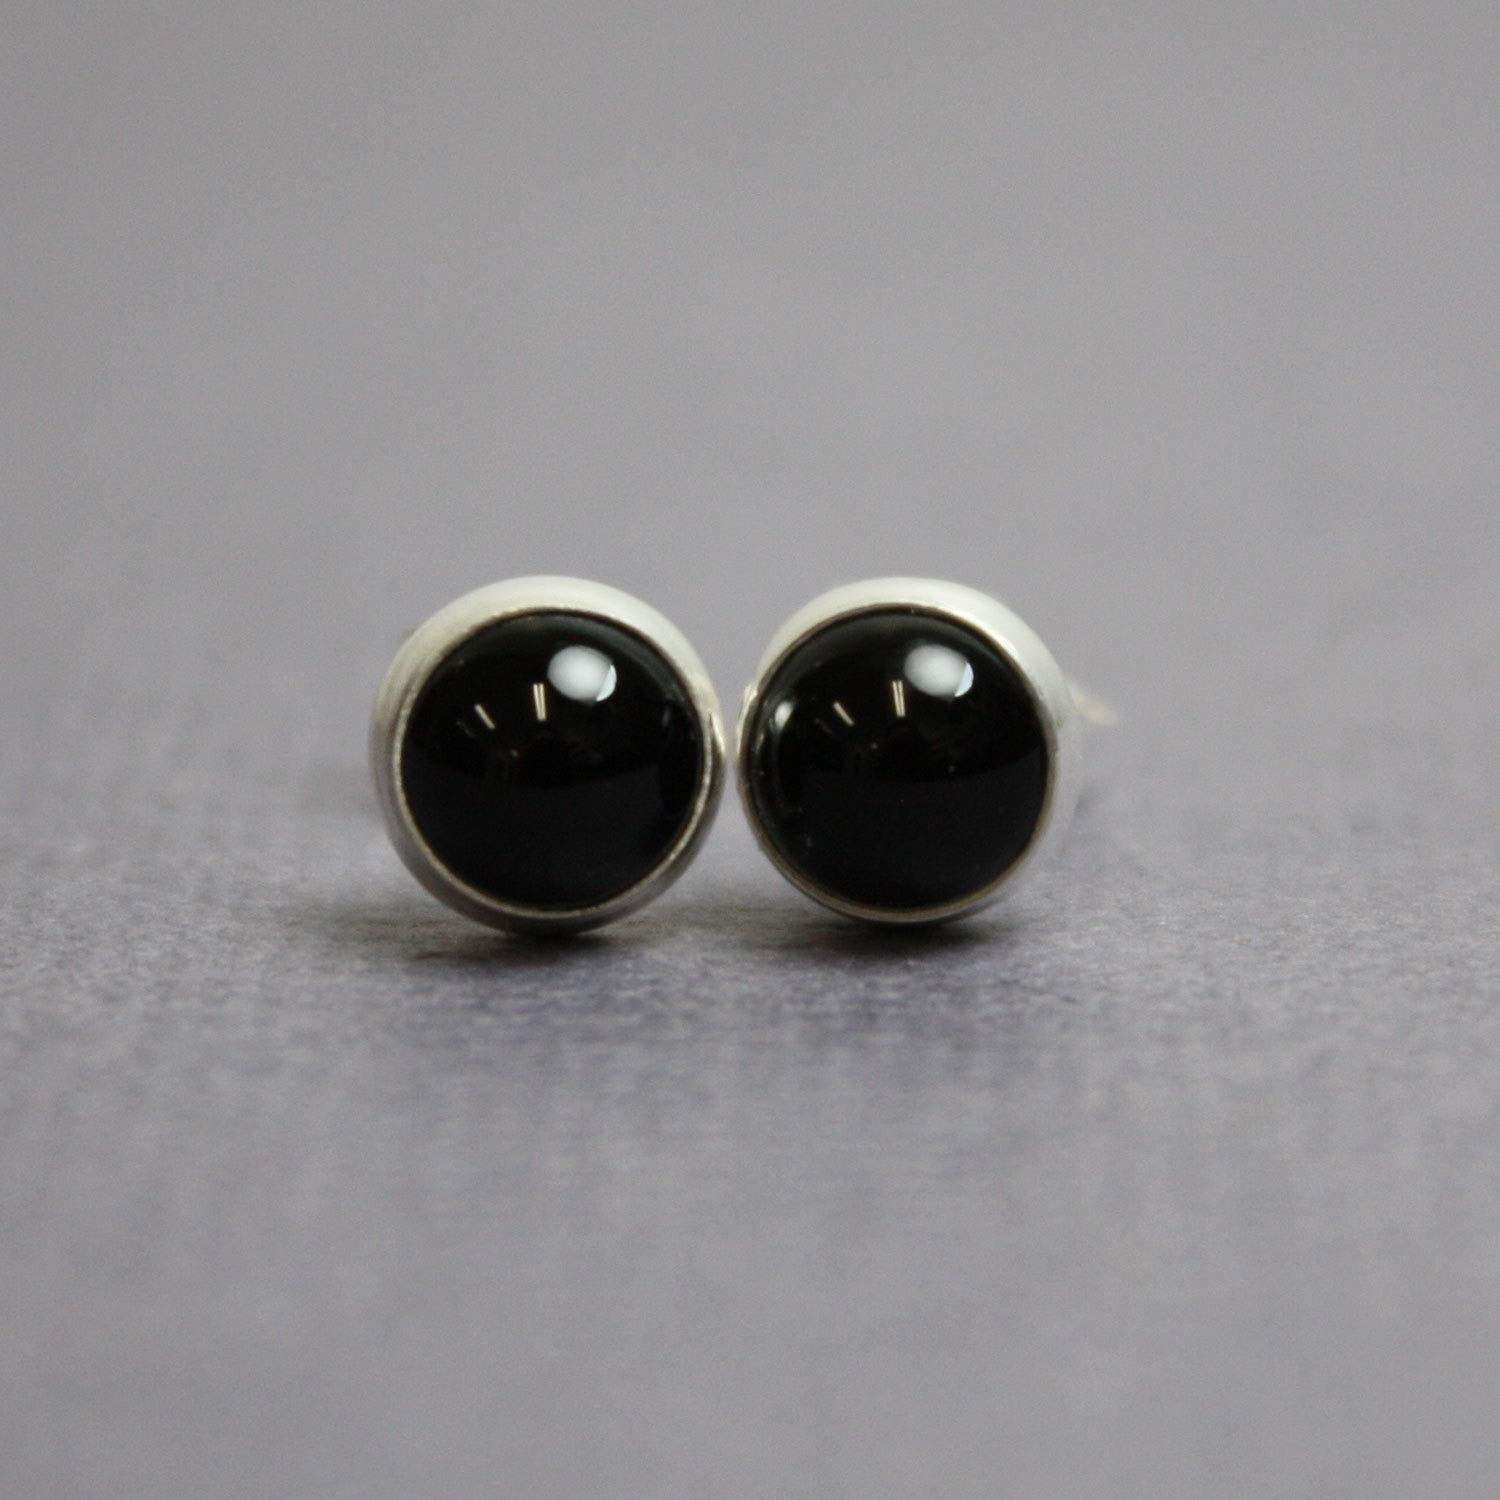 Black Onyx Stud Earrings-6mm in Sterling Silver-Handmade